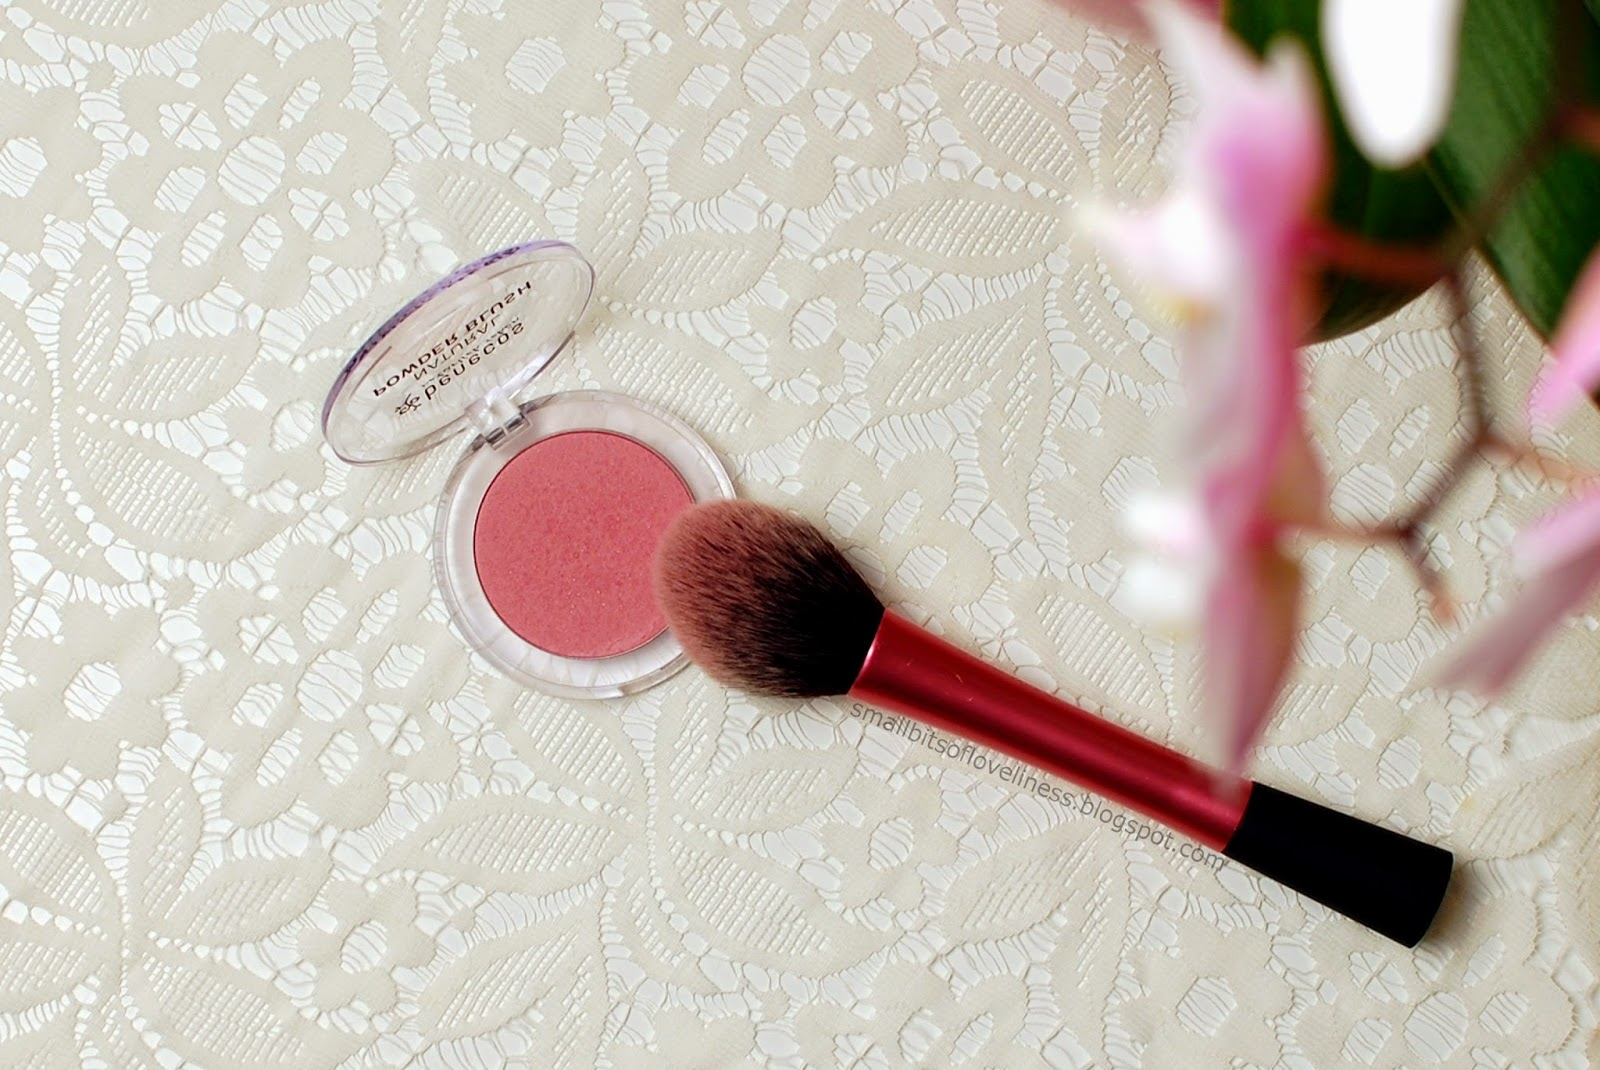 Benecos Natural Powder Blush Mallow Rose, Real Techniques Blush Brush